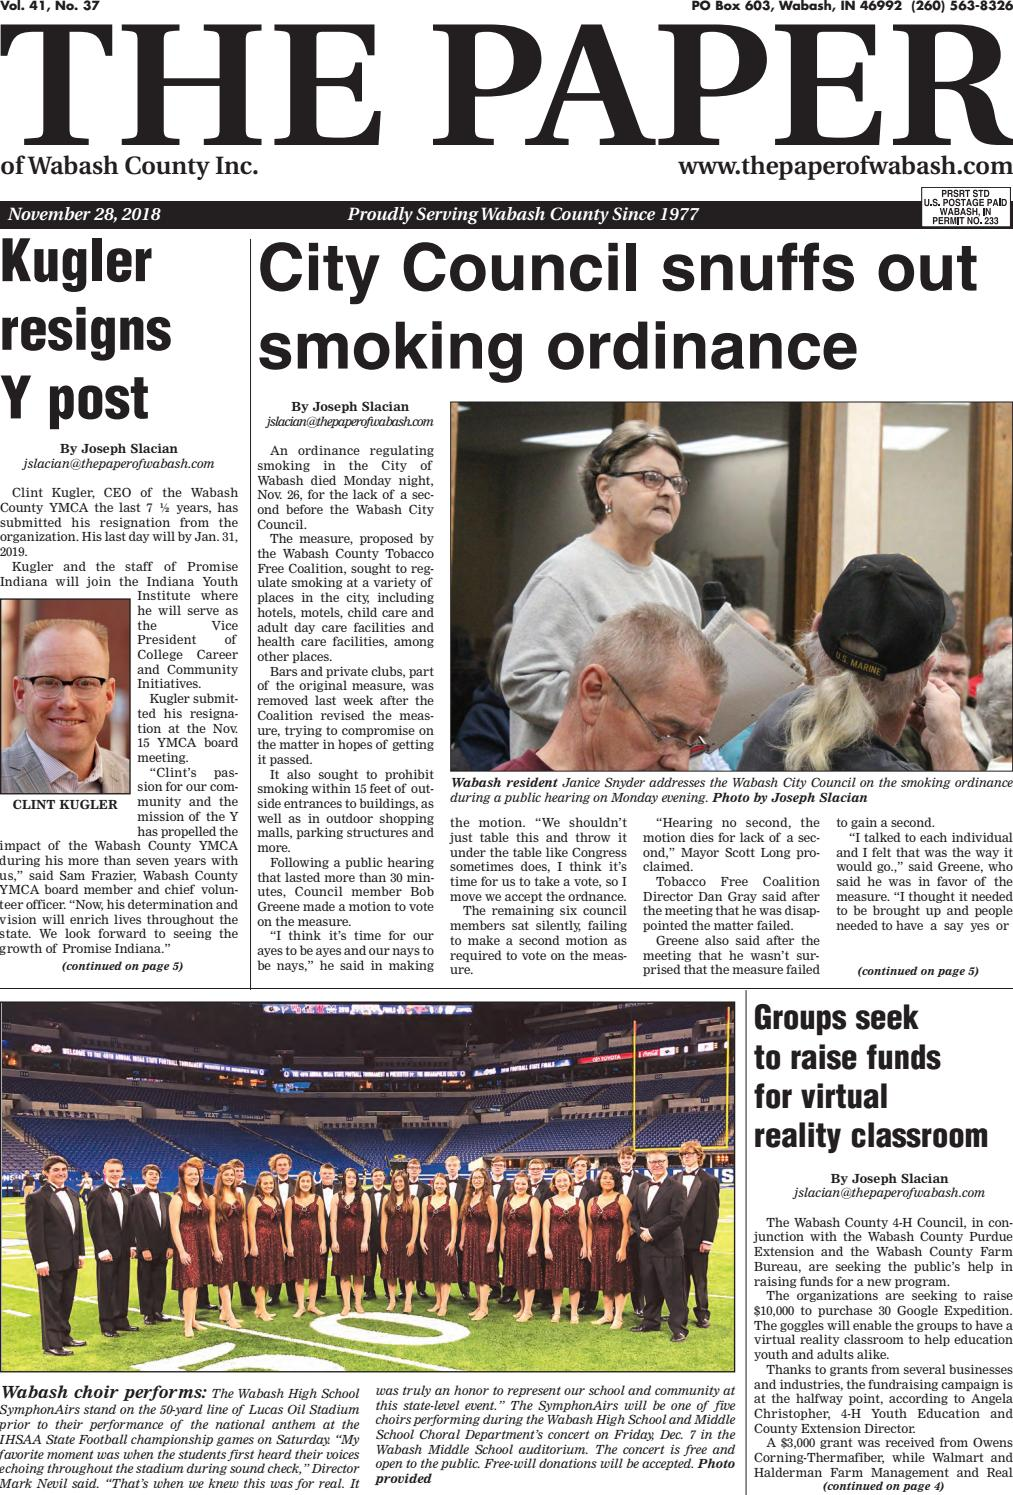 The Paper of Wabash County -- Nov  28, 2018 issue by The